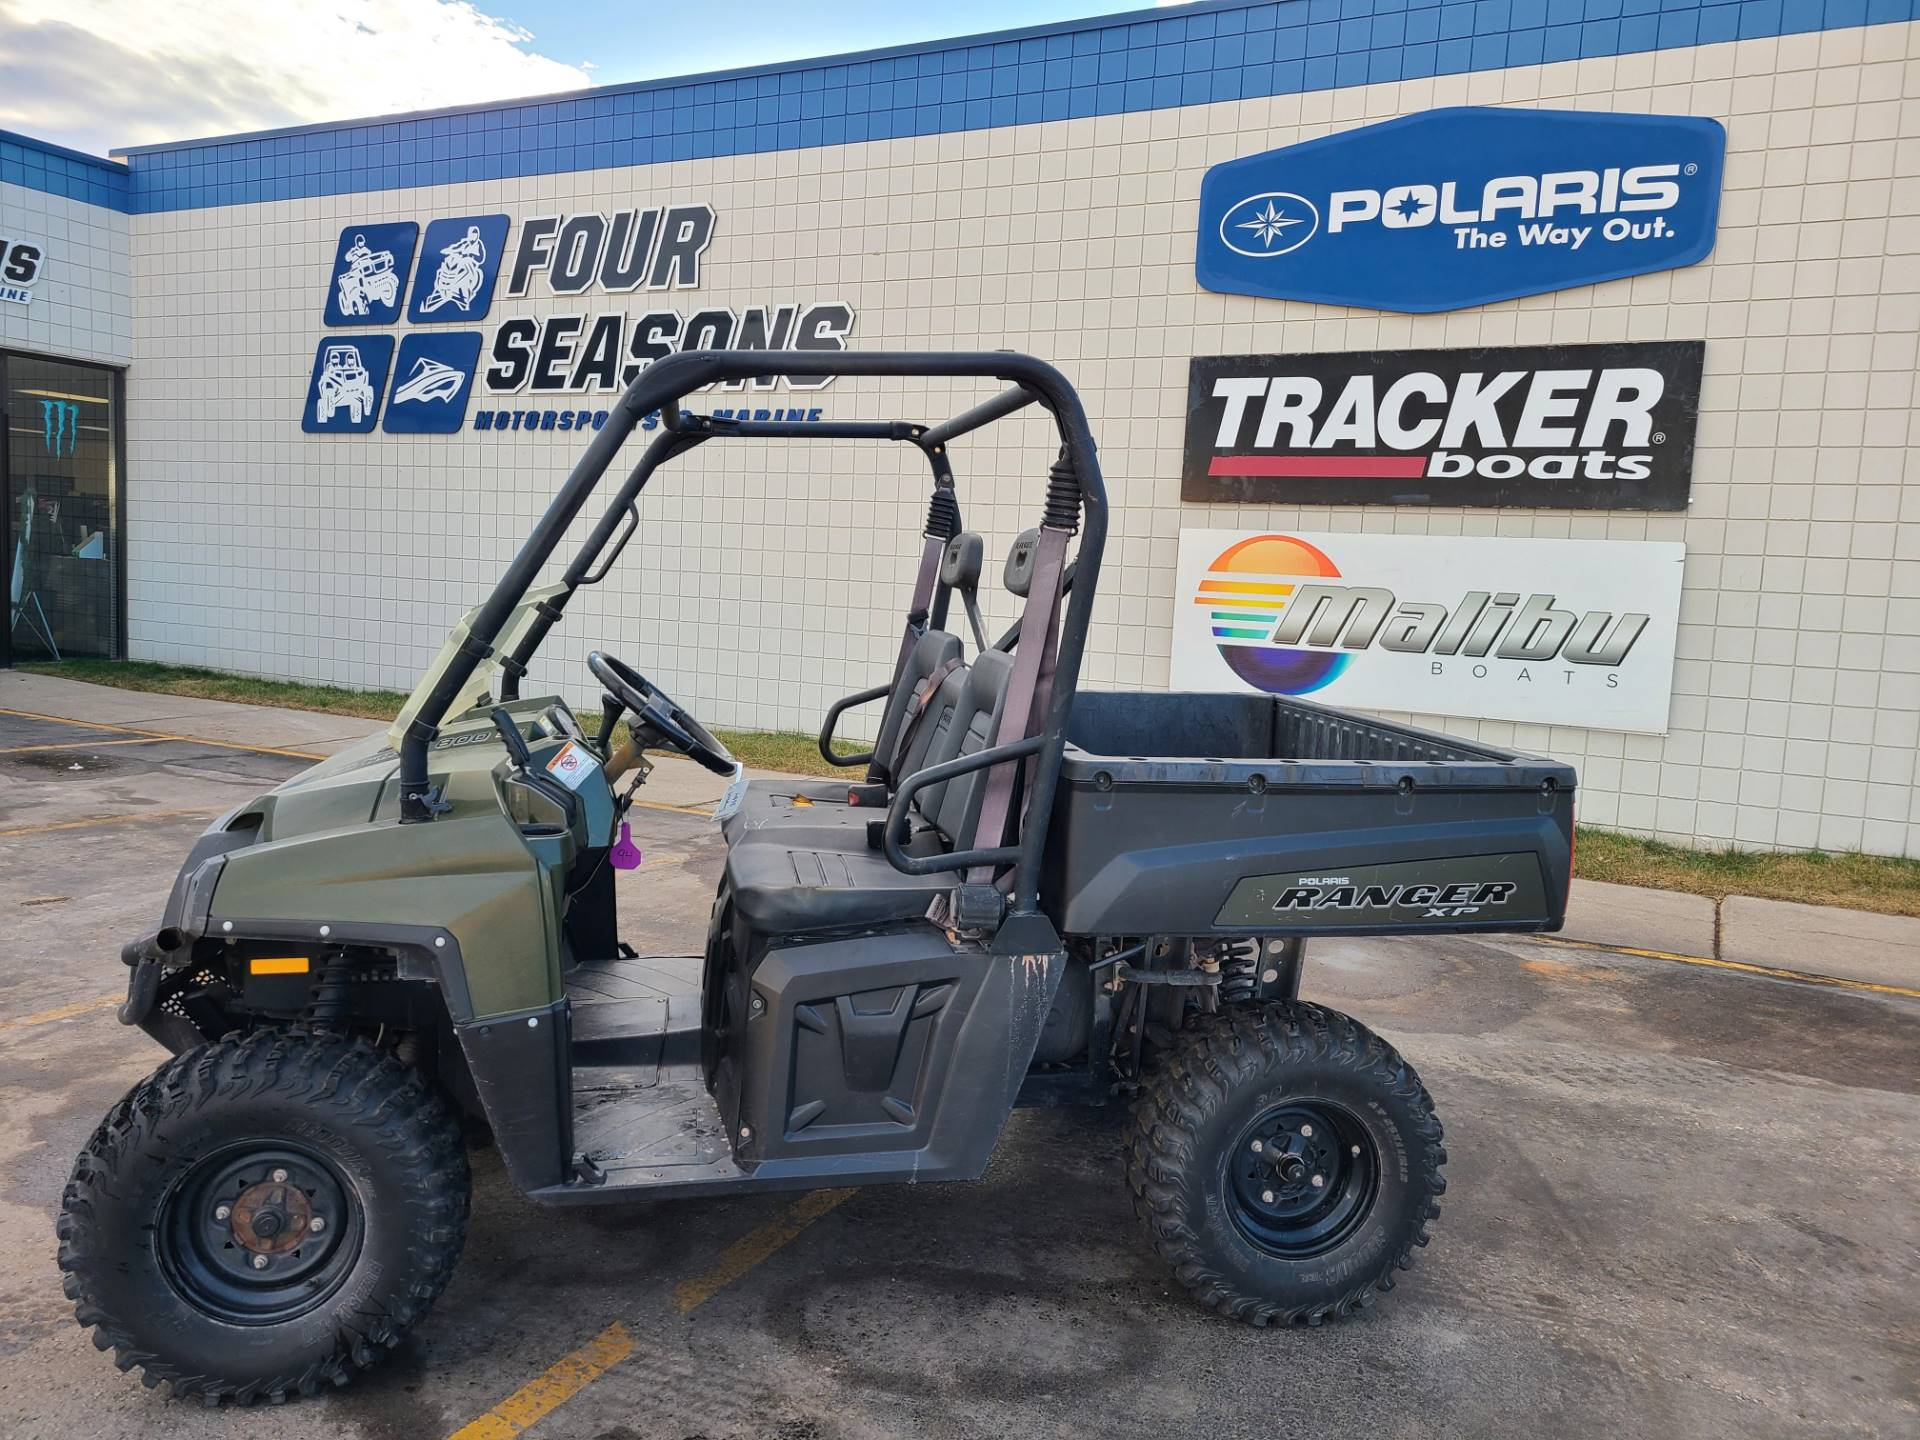 2012 Polaris Ranger XP® 800 in Rapid City, South Dakota - Photo 1